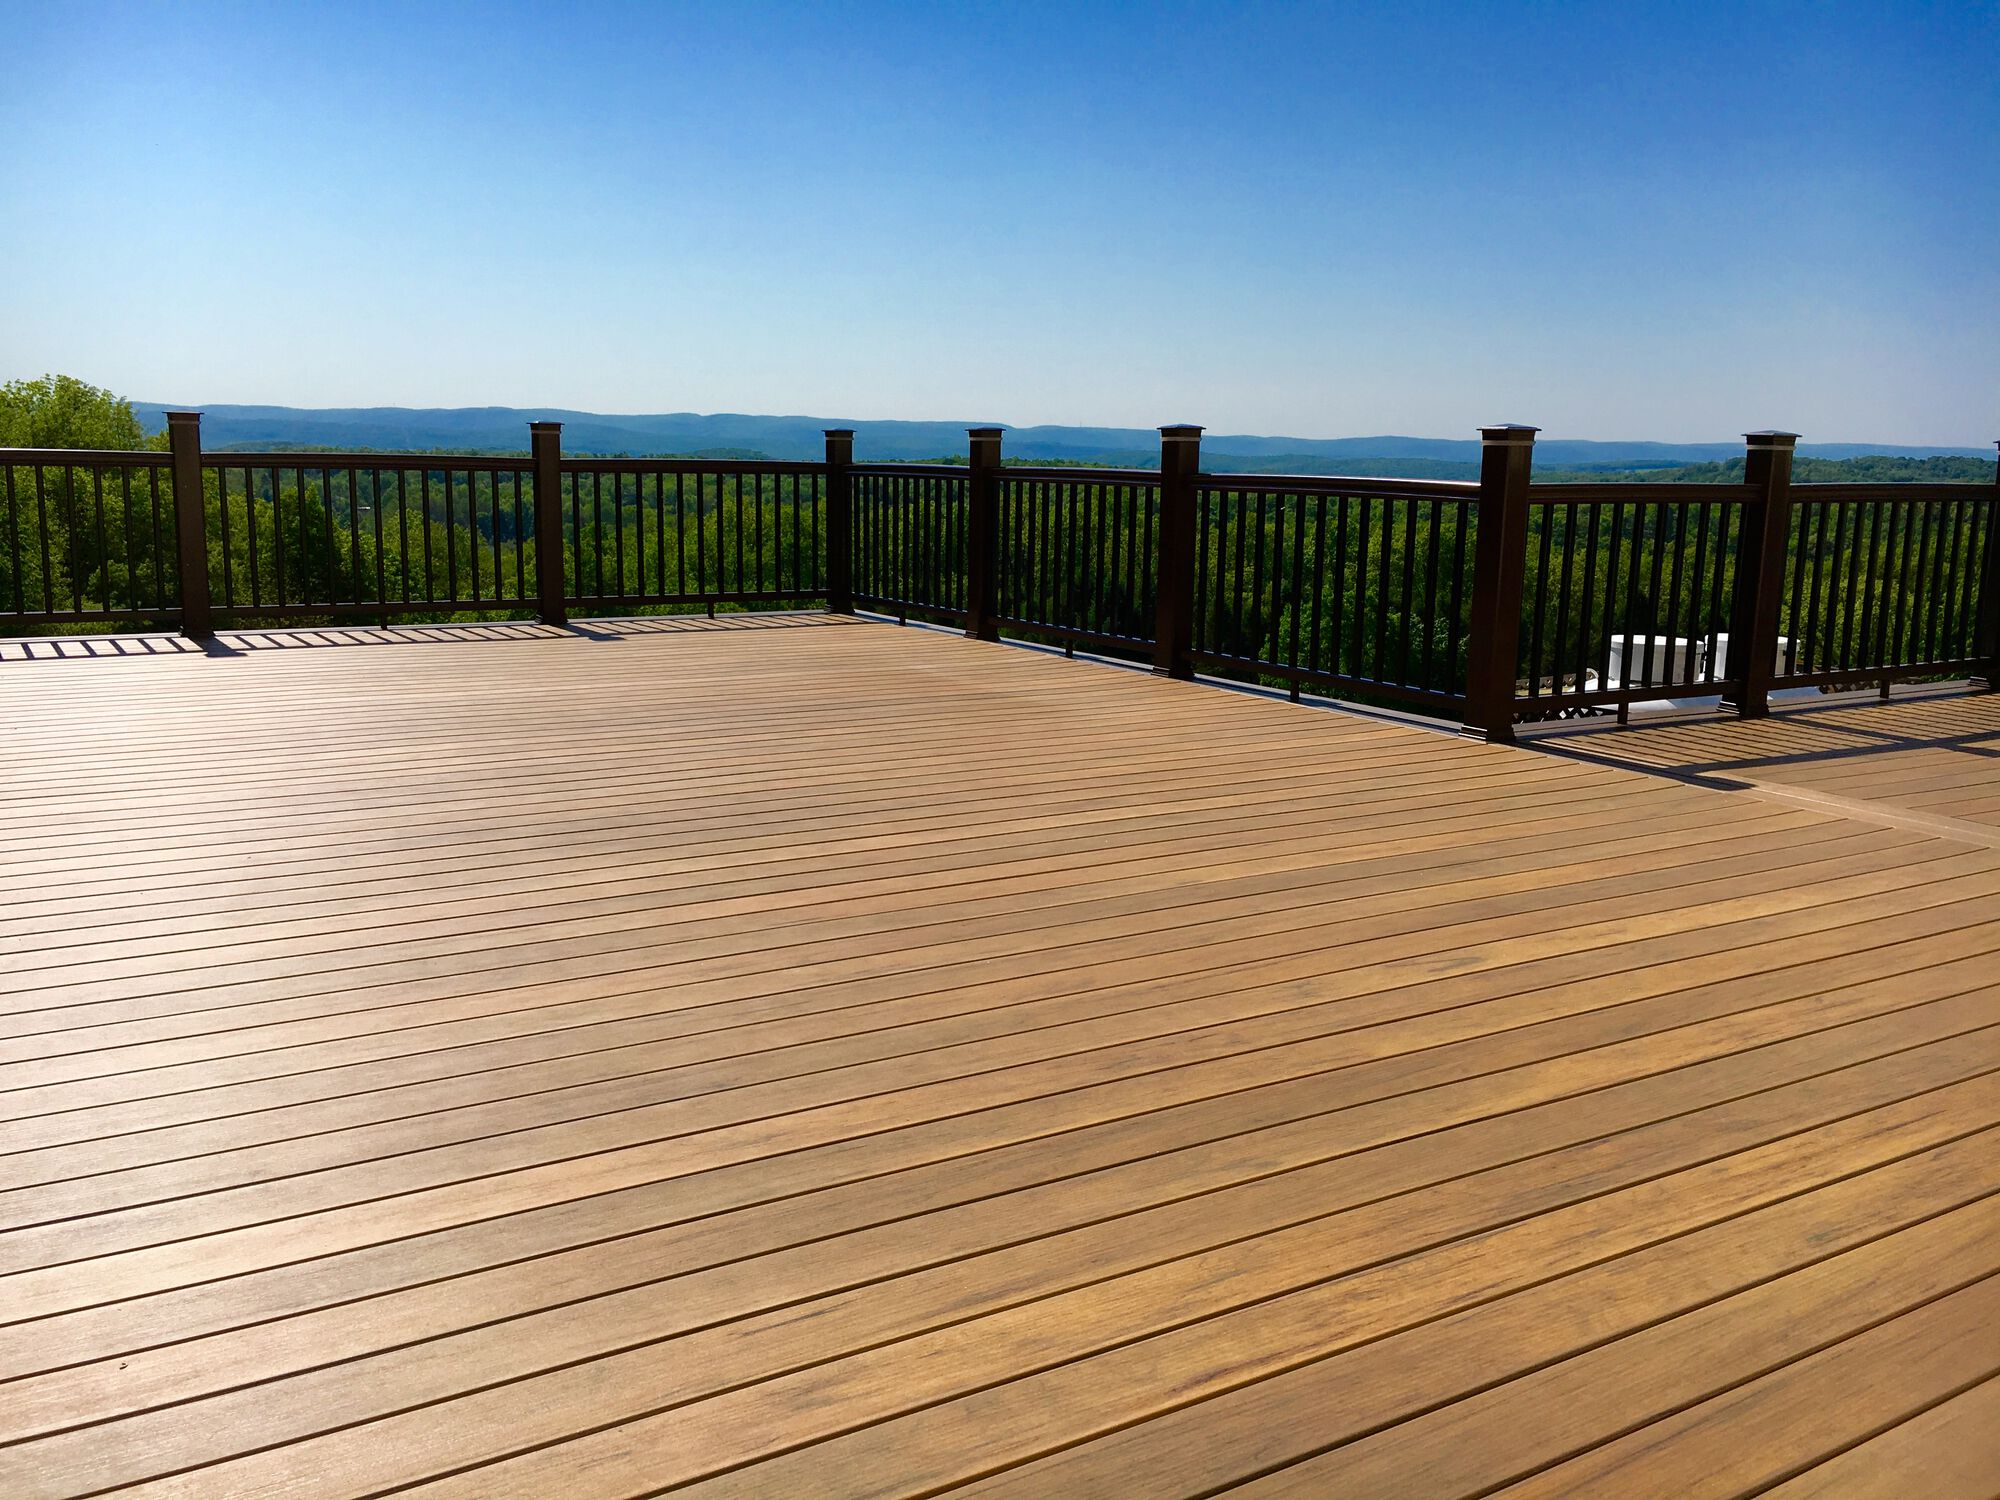 Timbertech Pro Composite Decking and Rails with Post Cap LED Lighting in Wantage, Sussex County NJ